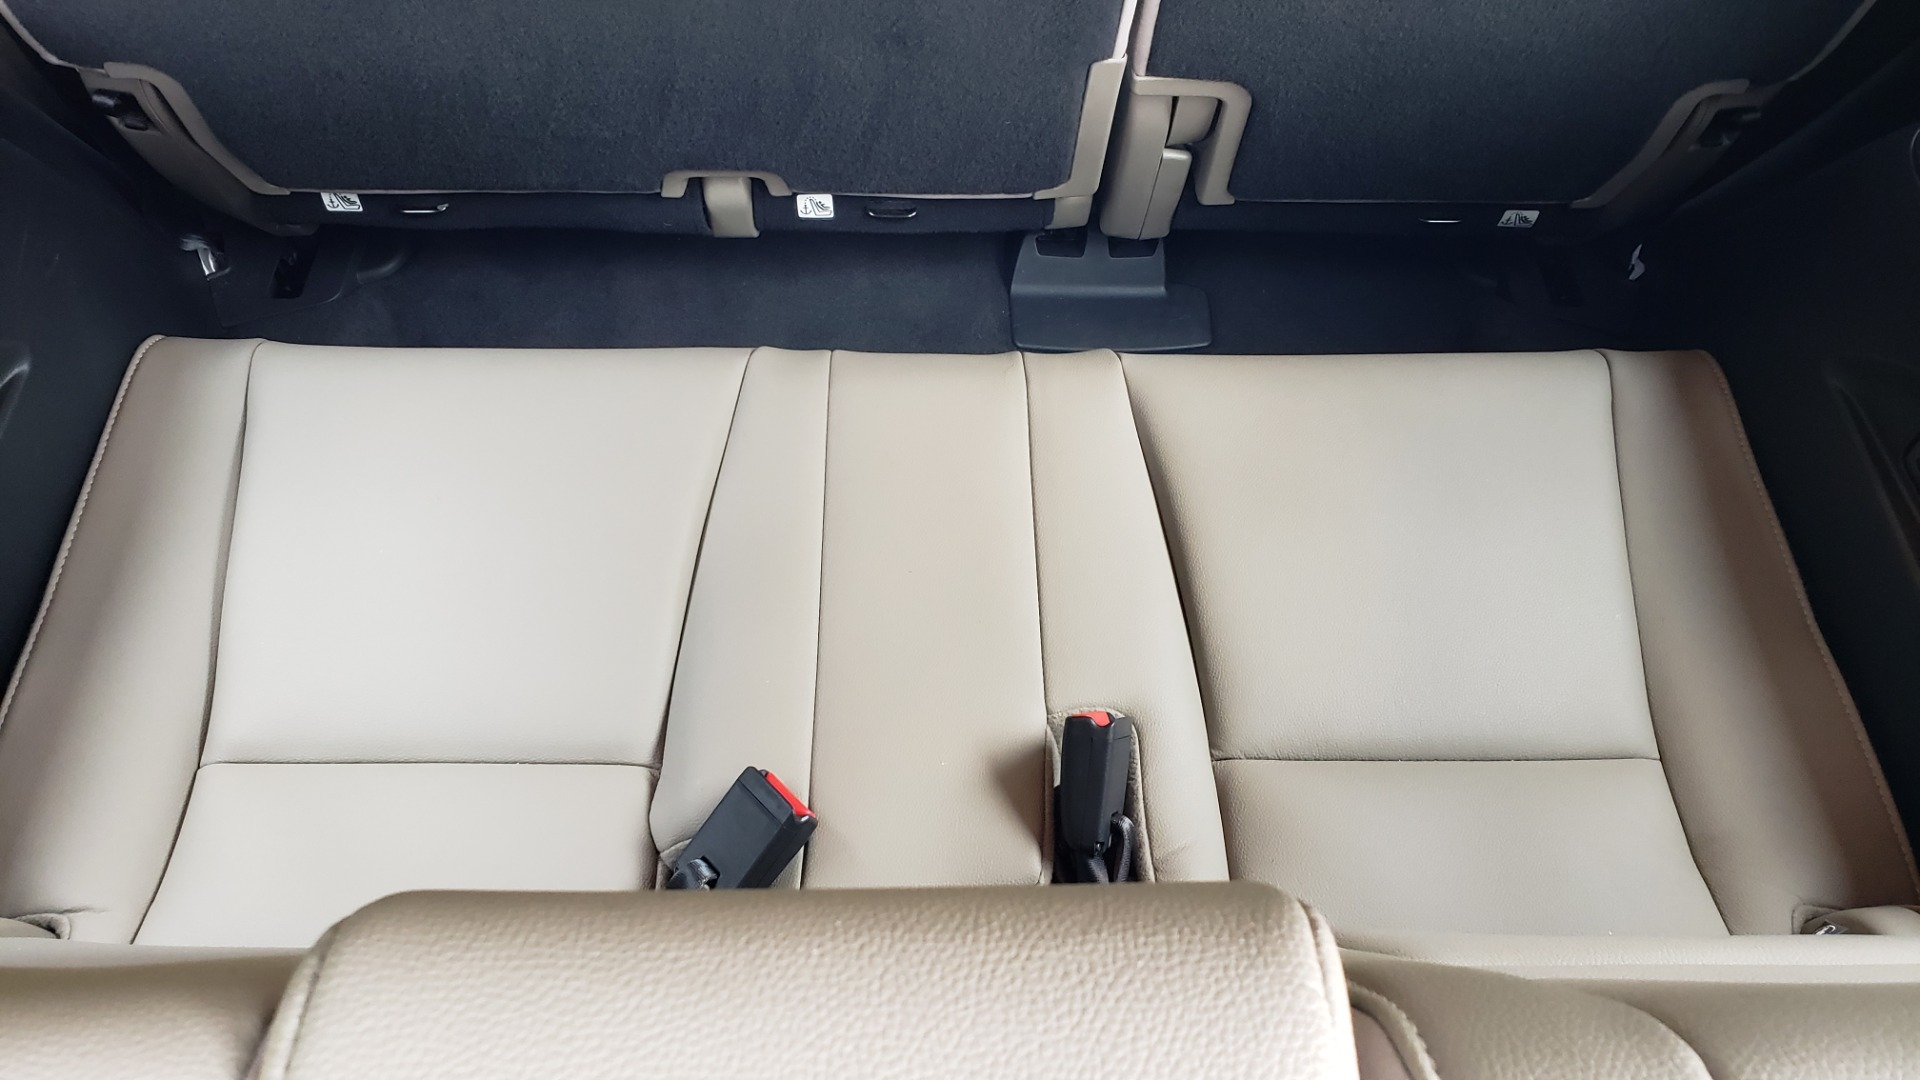 Used 2019 Honda PILOT EX-L / V6 / NAV / SUNROOF / DVD / 3-ROW / REARVIEW for sale Sold at Formula Imports in Charlotte NC 28227 15